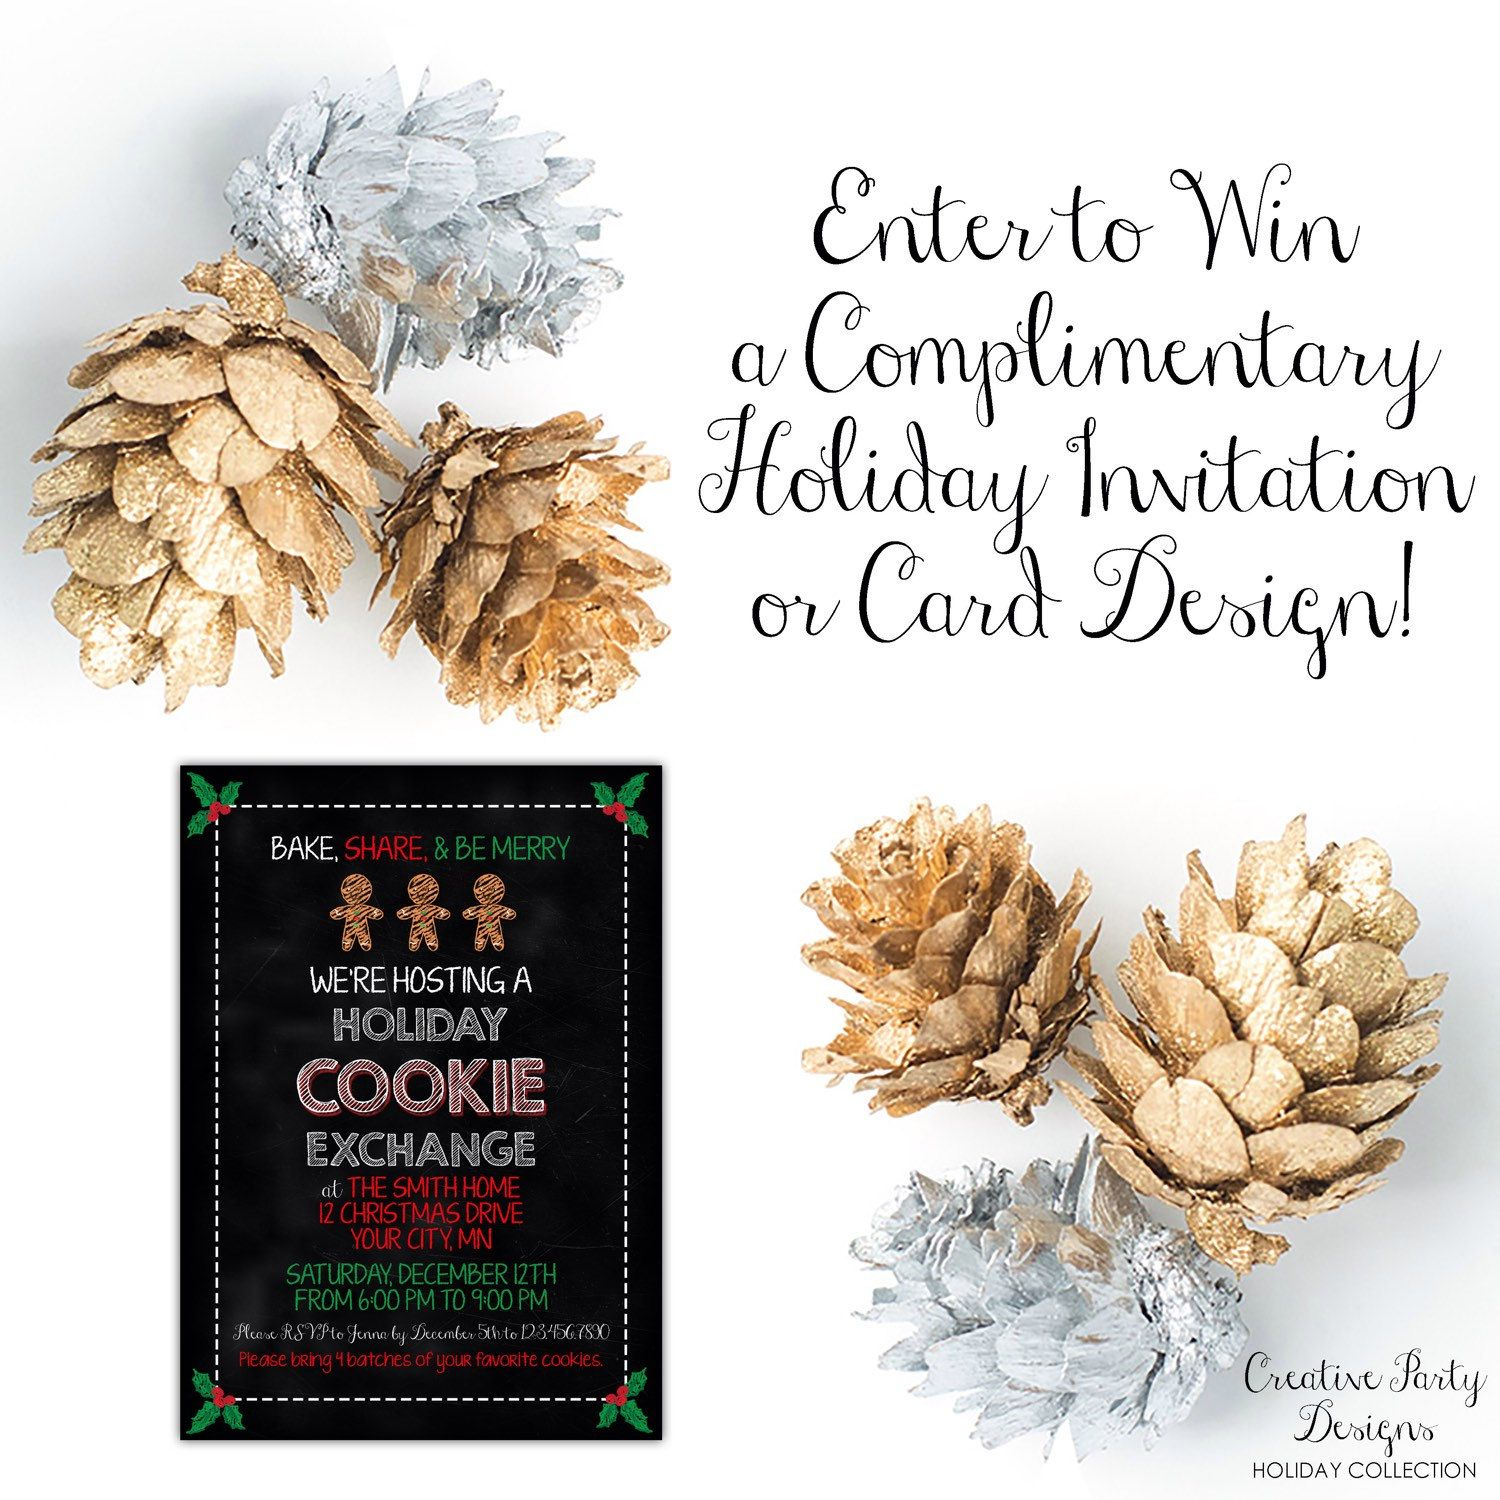 ❄️ Enter to win a complimentary holiday card or holiday invitation design on Facebook ➡️ https://www.facebook.com/CreativePartyDesigns1/posts/423633007830560:0